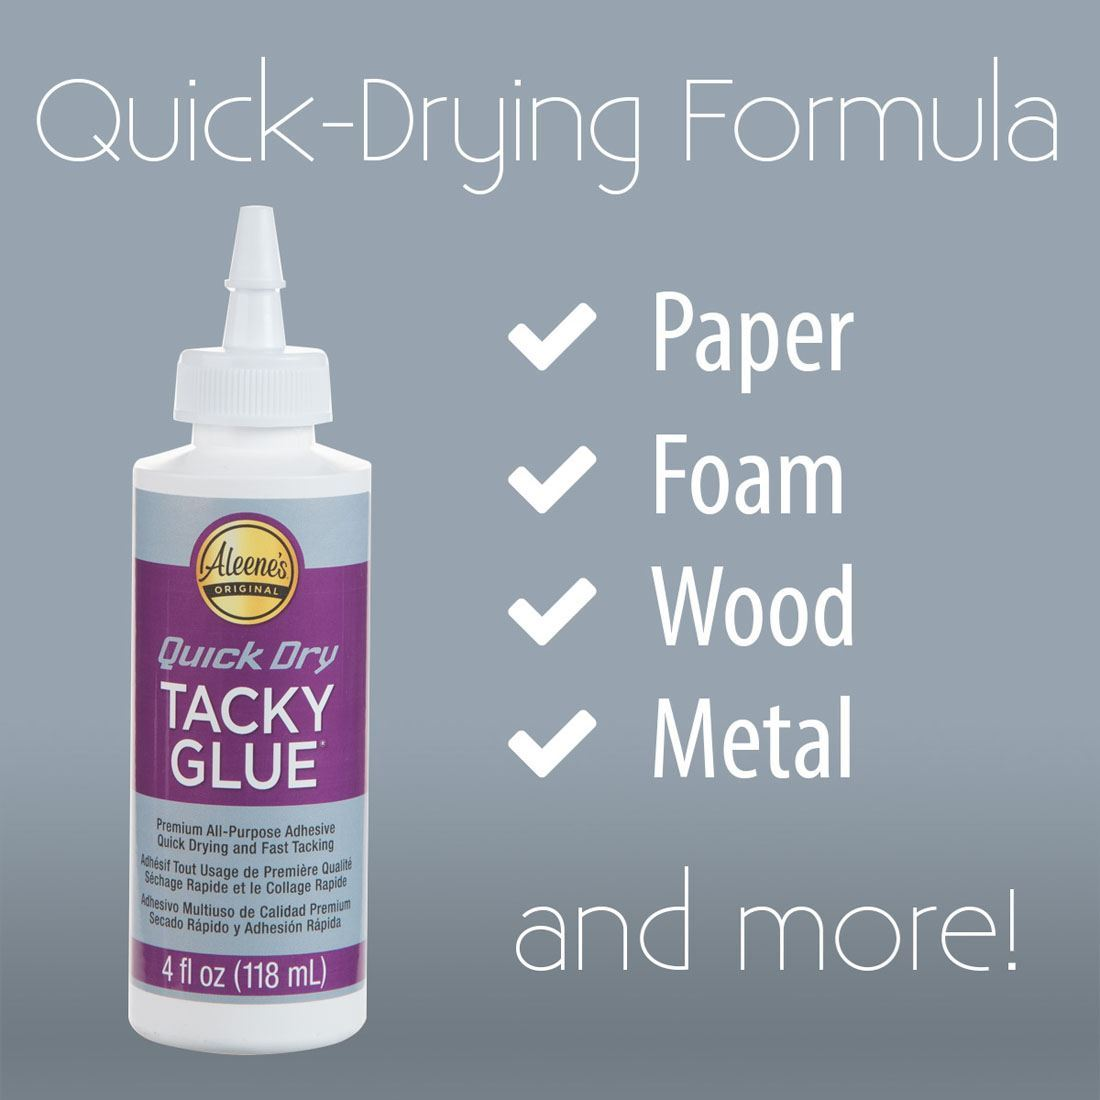 Quick Dry Tacky Glue - Surfaces